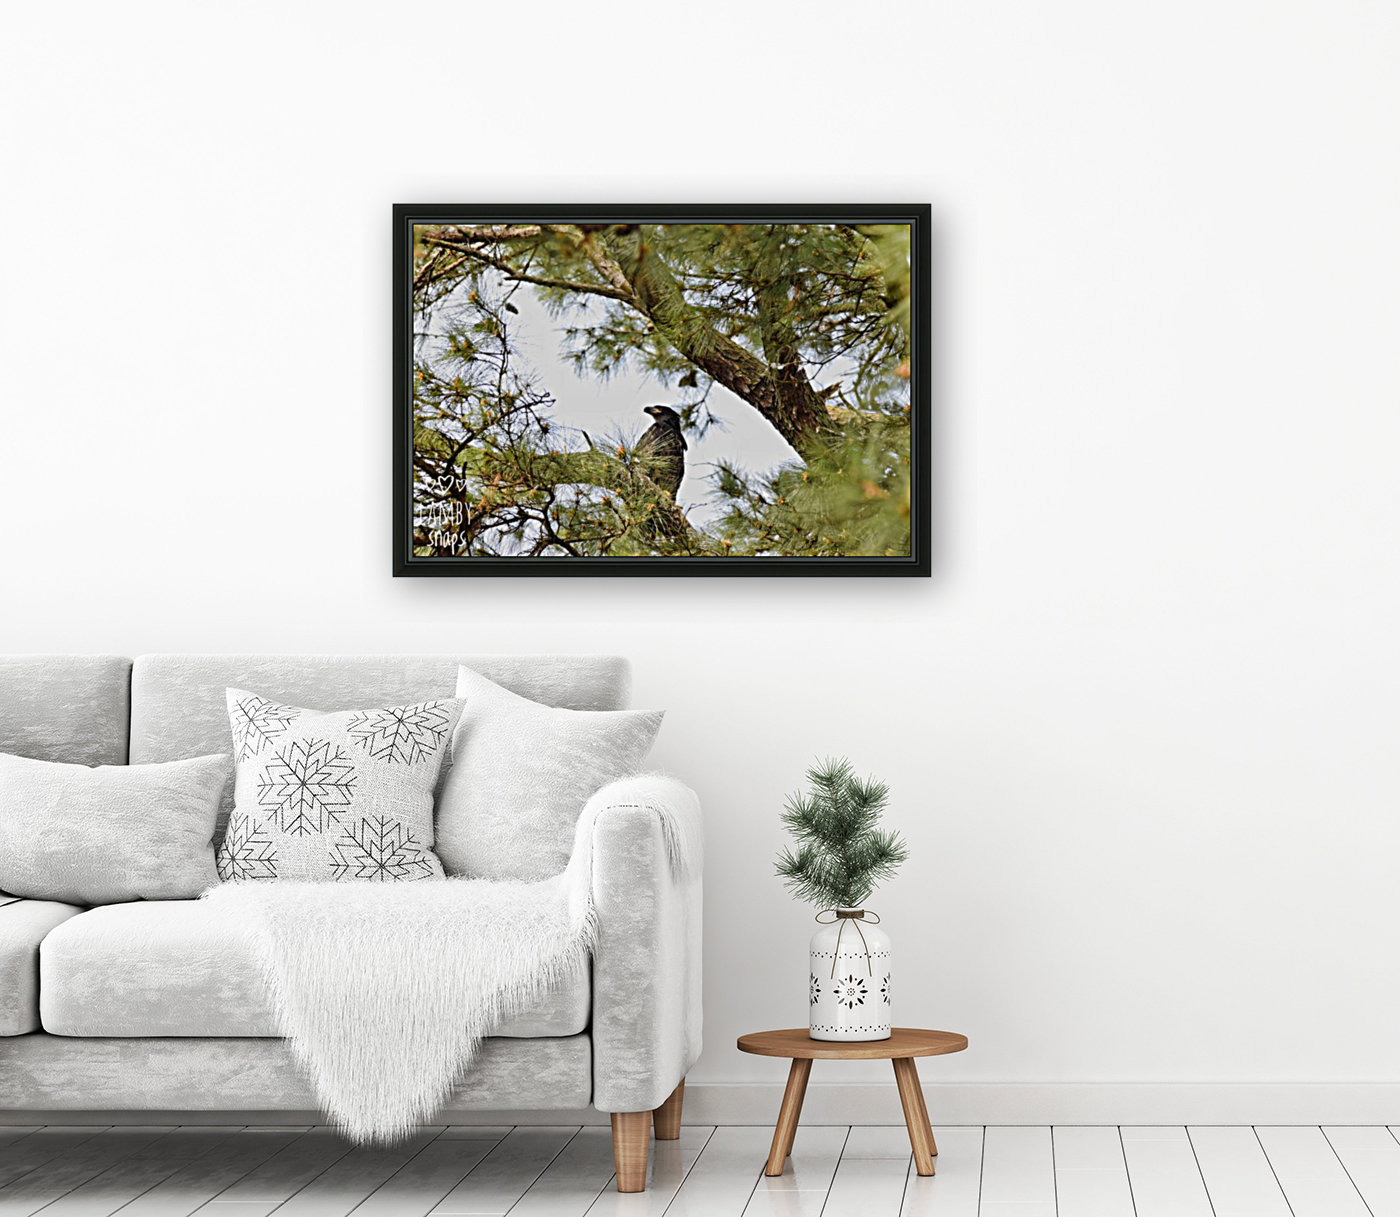 Baby Eagle with Floating Frame